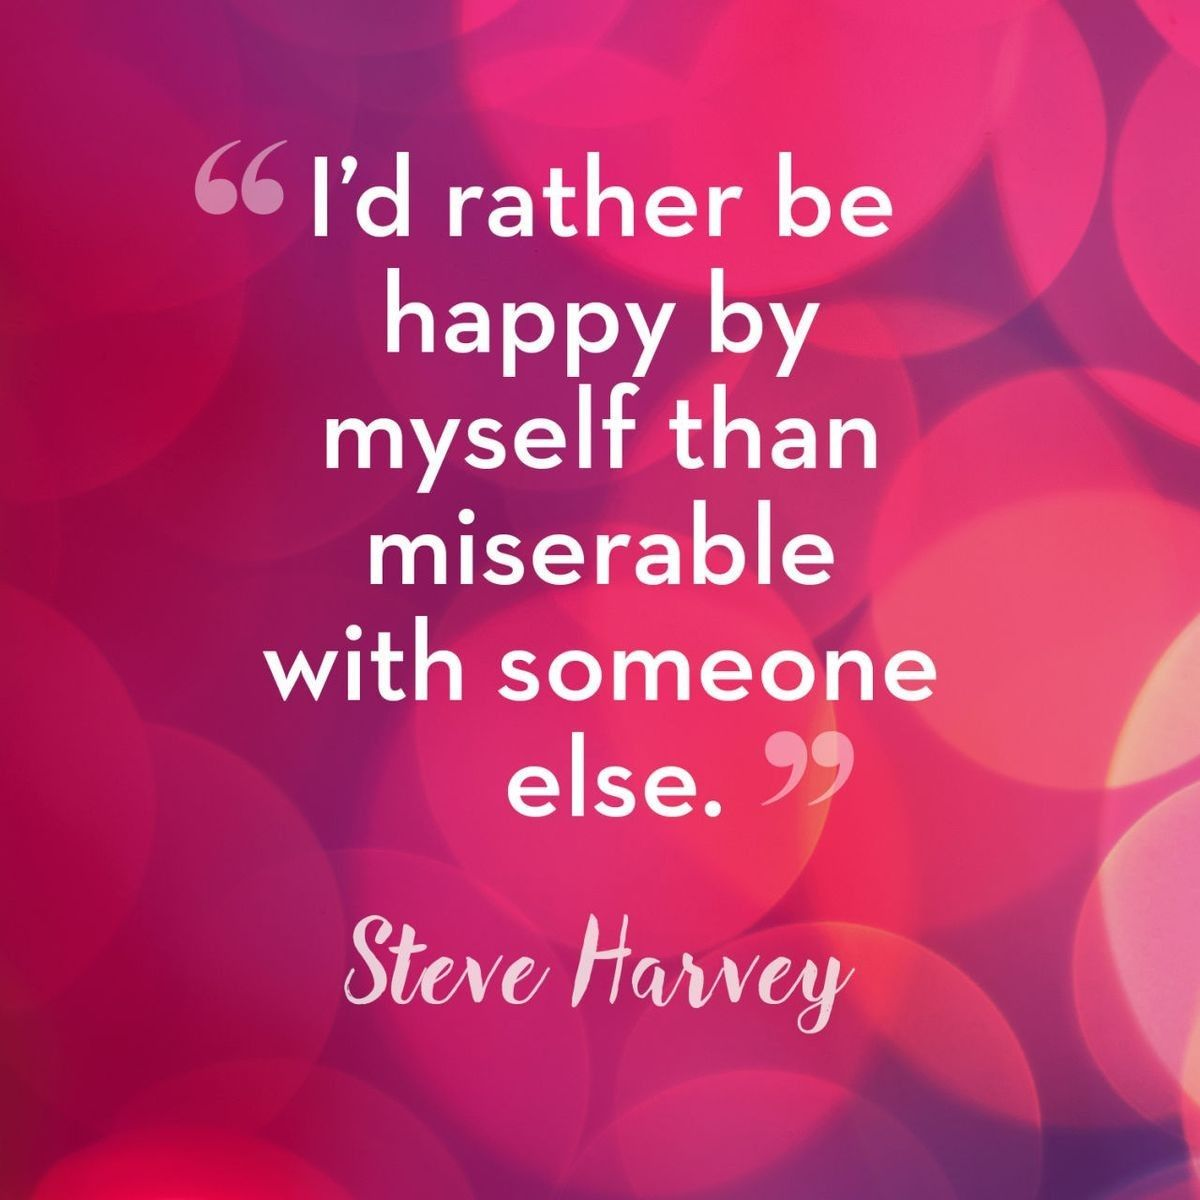 Steve Harvey Quotes Steve Harvey ♡  Steve Harvey Quotes  Pinterest  Steve Harvey